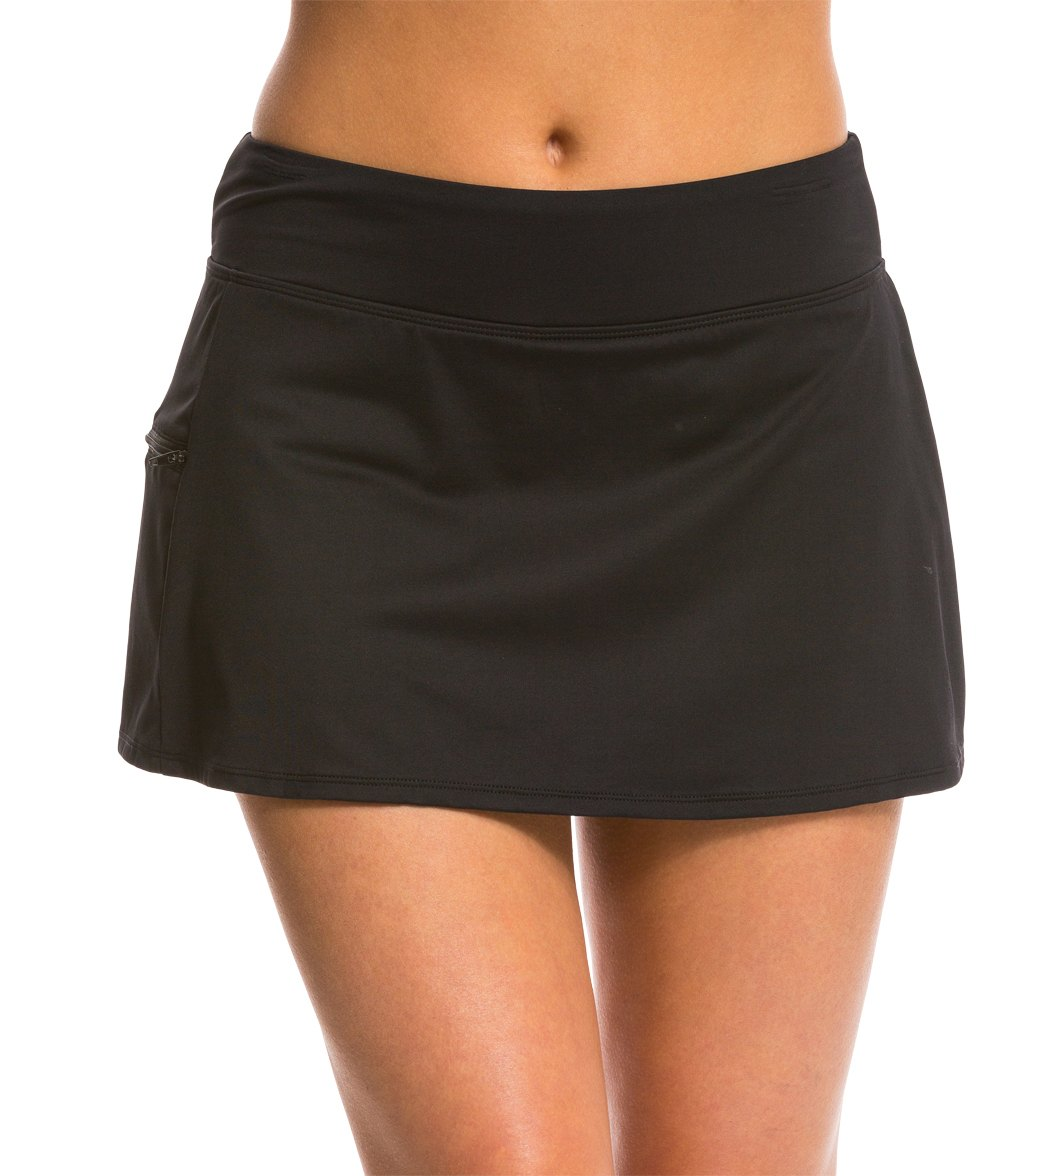 24069fe258d Beach House Solid Emma Swim Skirt at SwimOutlet.com - Free Shipping